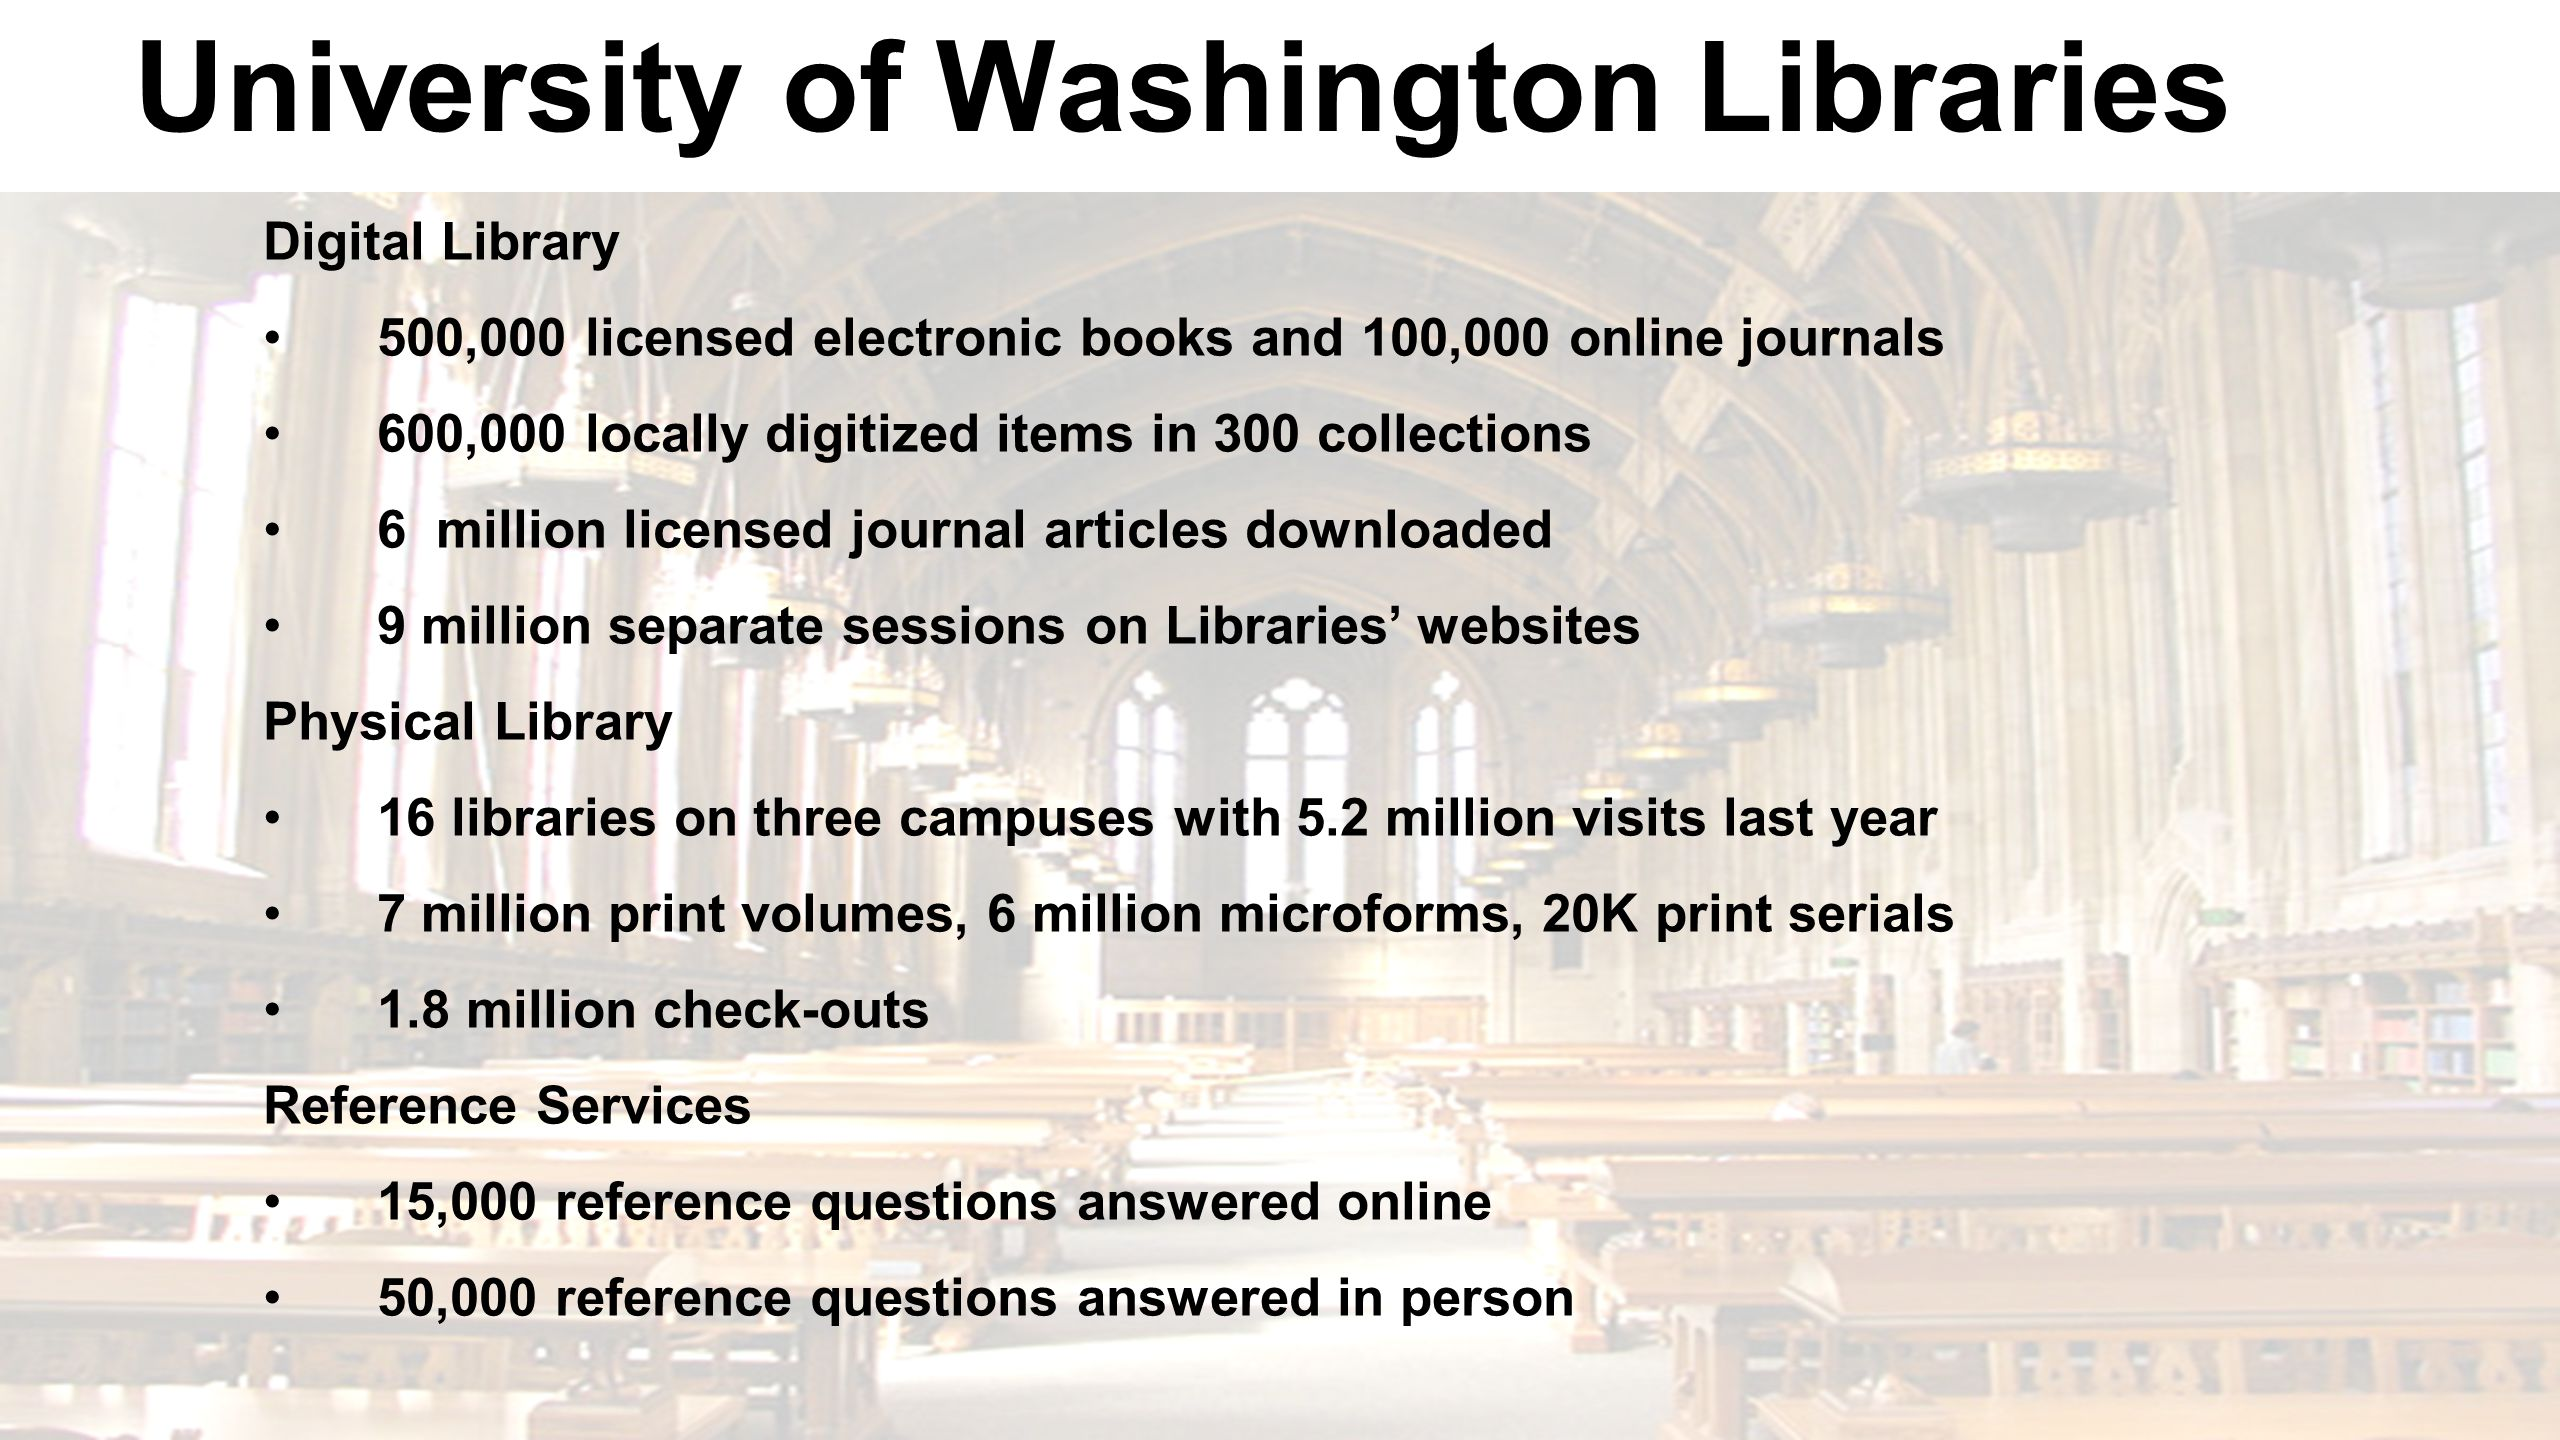 University of Washington Libraries Digital Library 500,000 licensed electronic books and 100,000 online journals 600,000 locally digitized items in 30